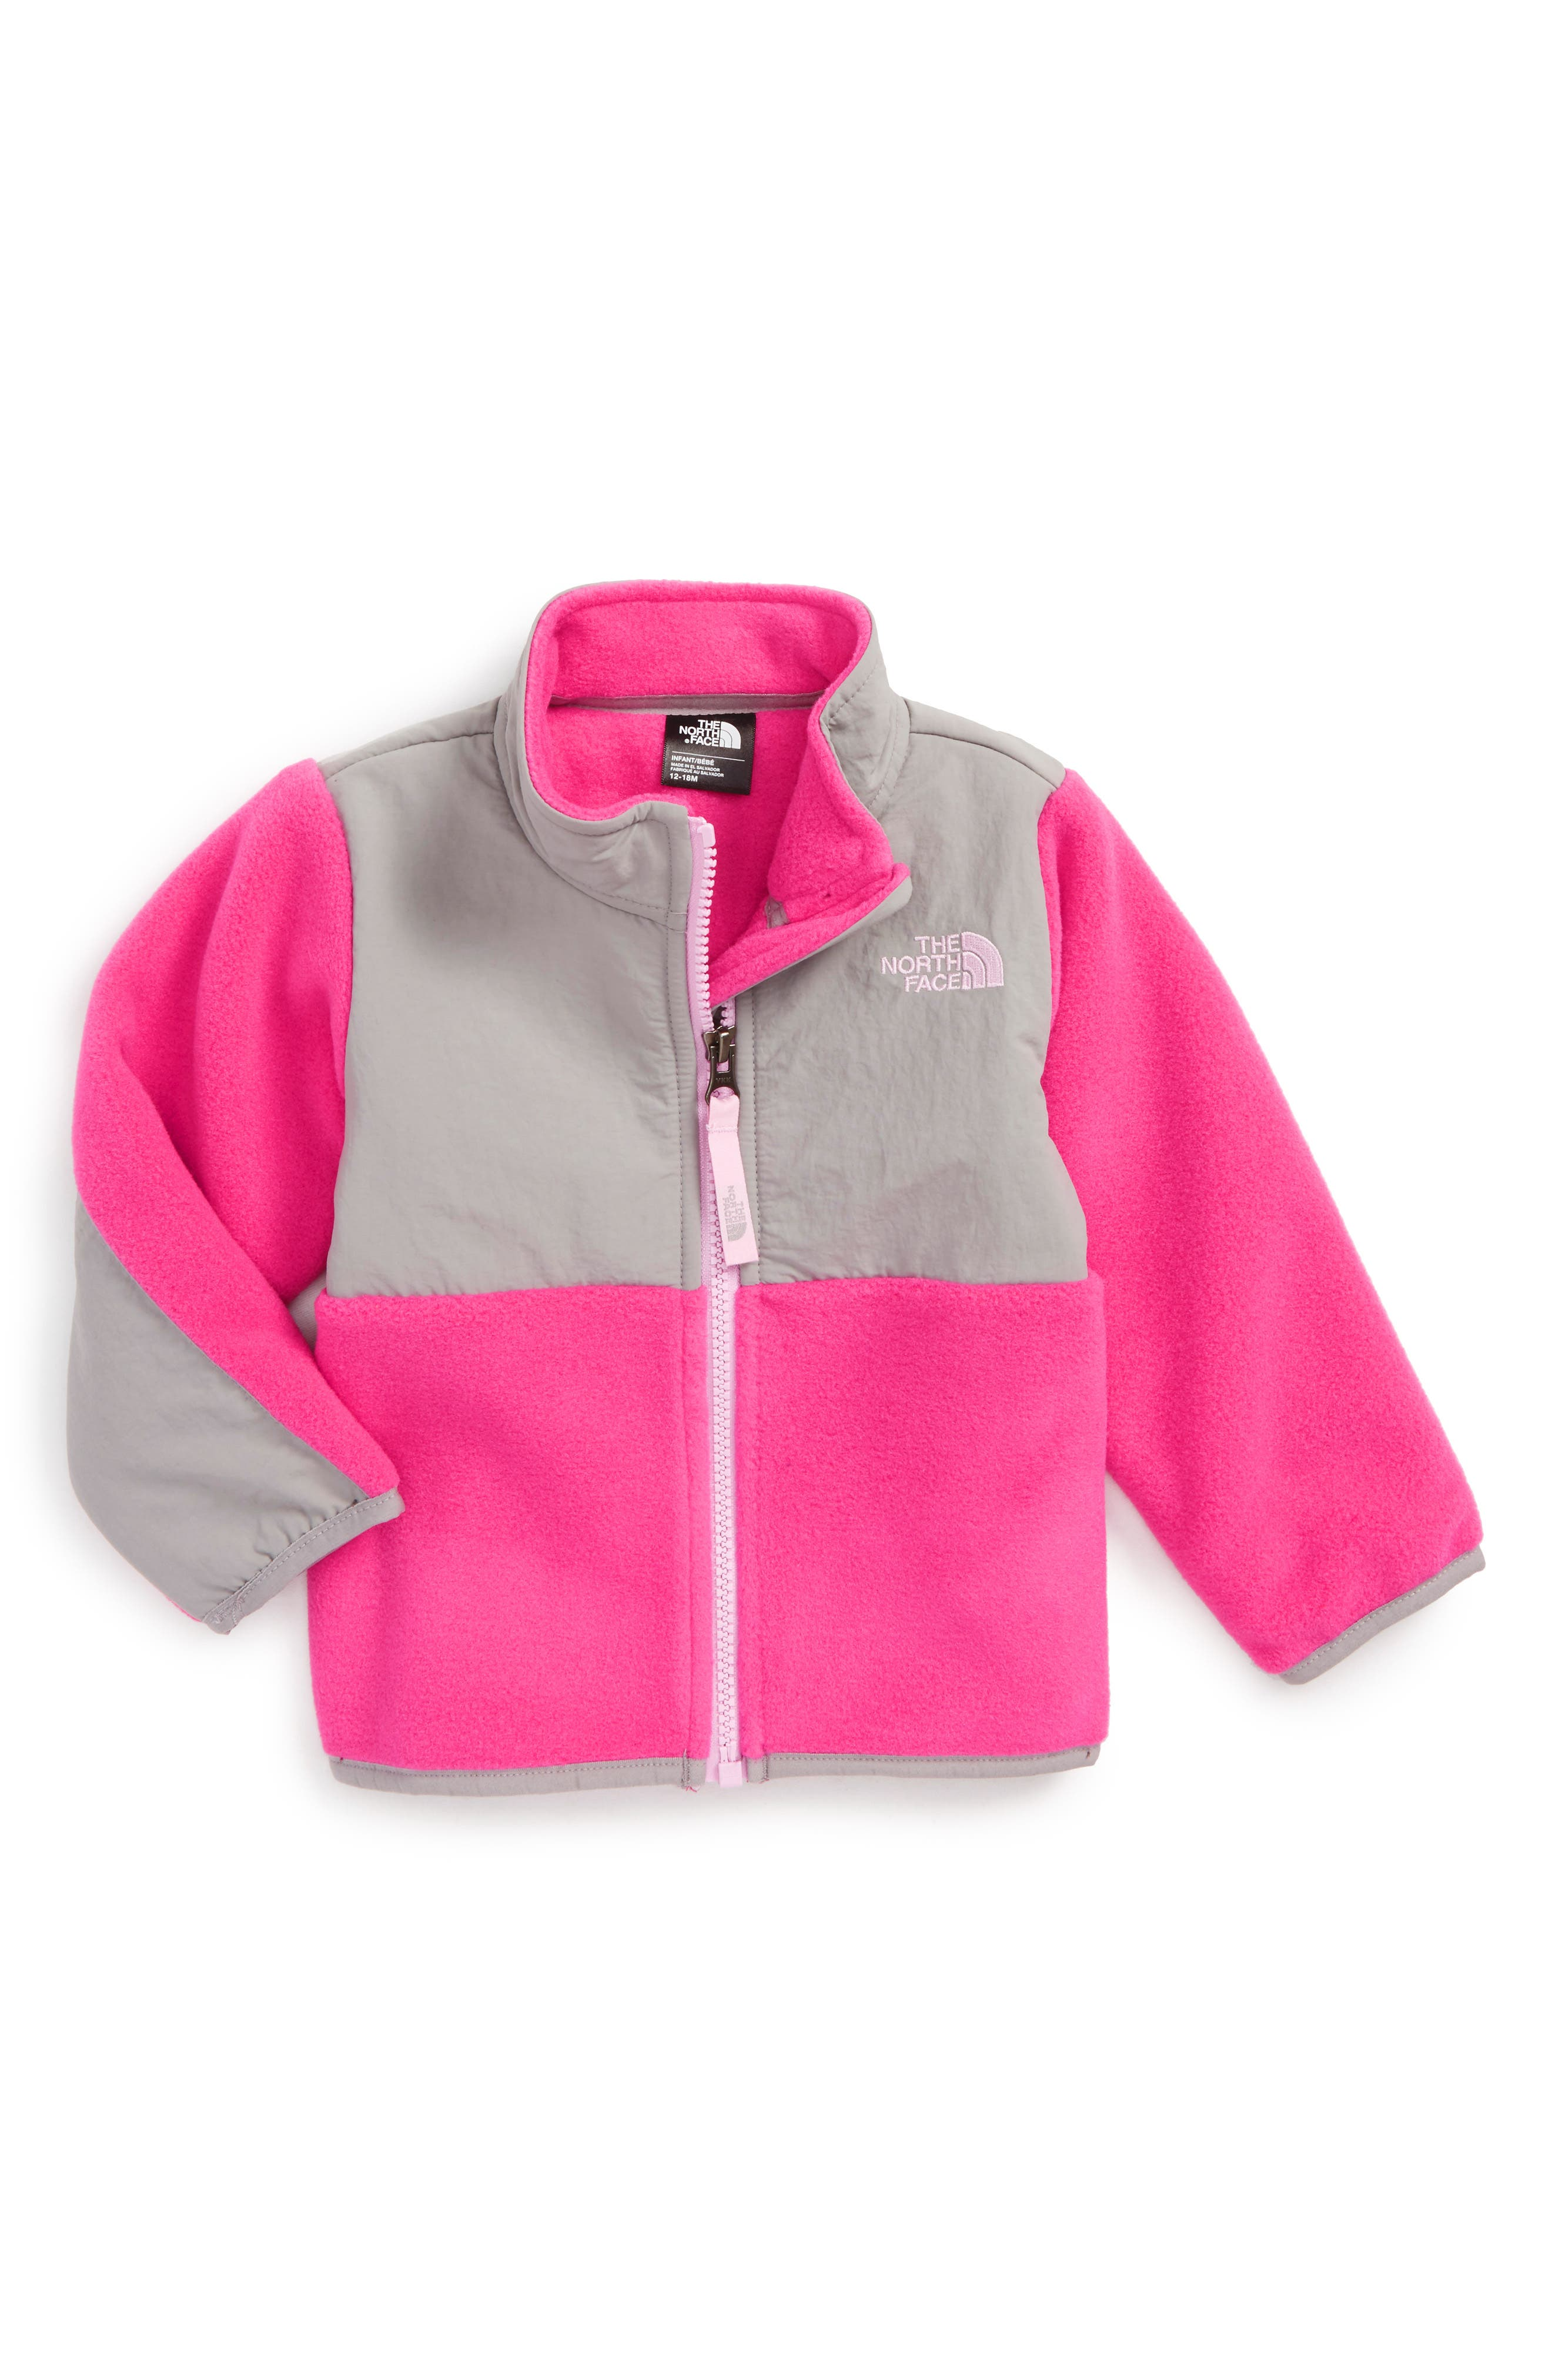 Alternate Image 1 Selected - The North Face 'Denali' Recycled Fleece Jacket (Baby Girls)